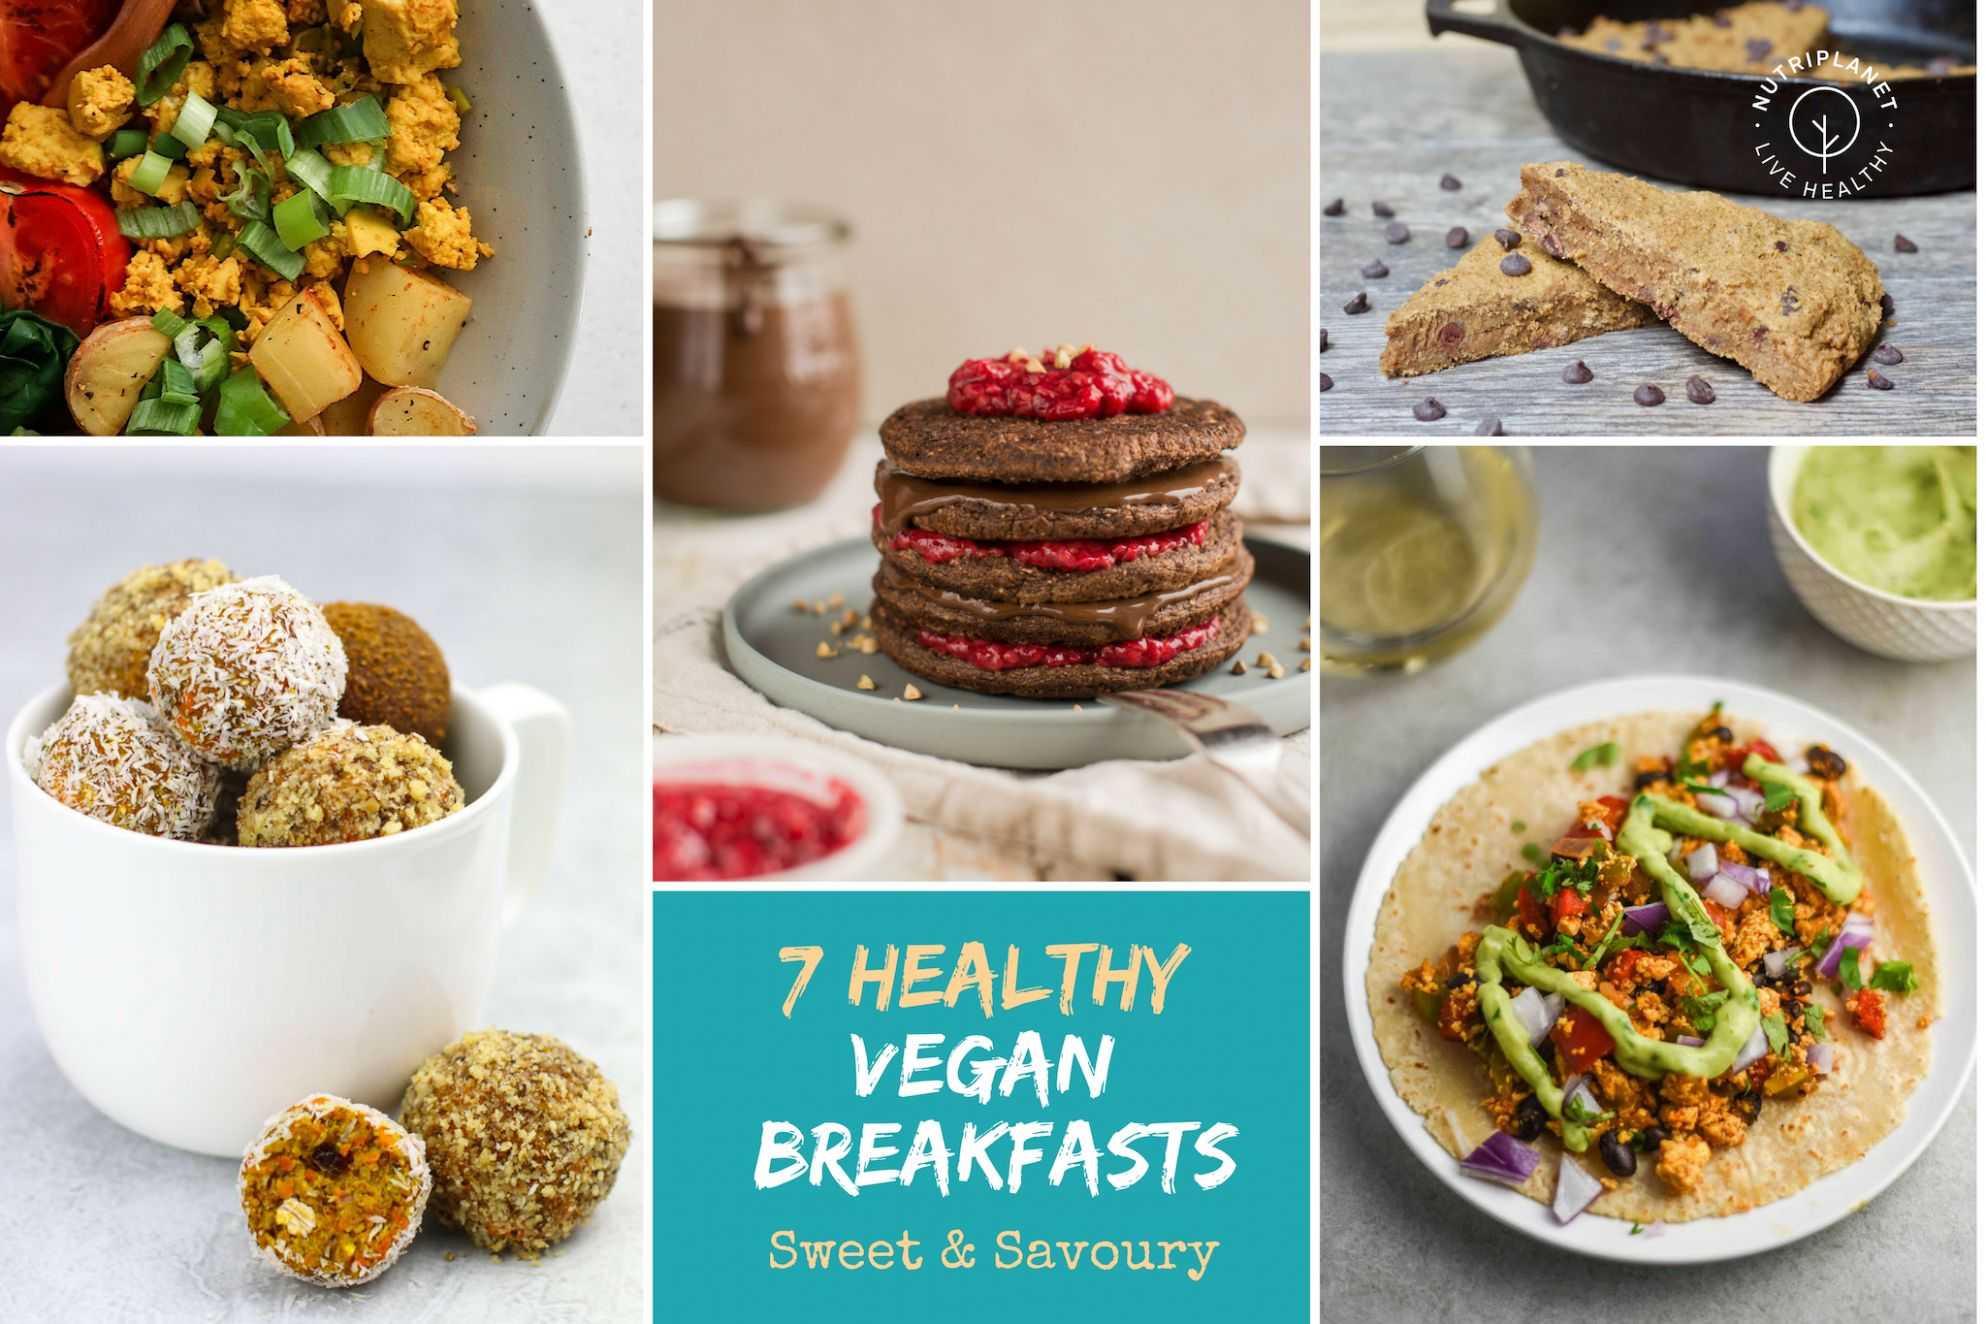 Healthy Vegan Breakfast Recipes: 10 Sweet and Savoury Ideas ...